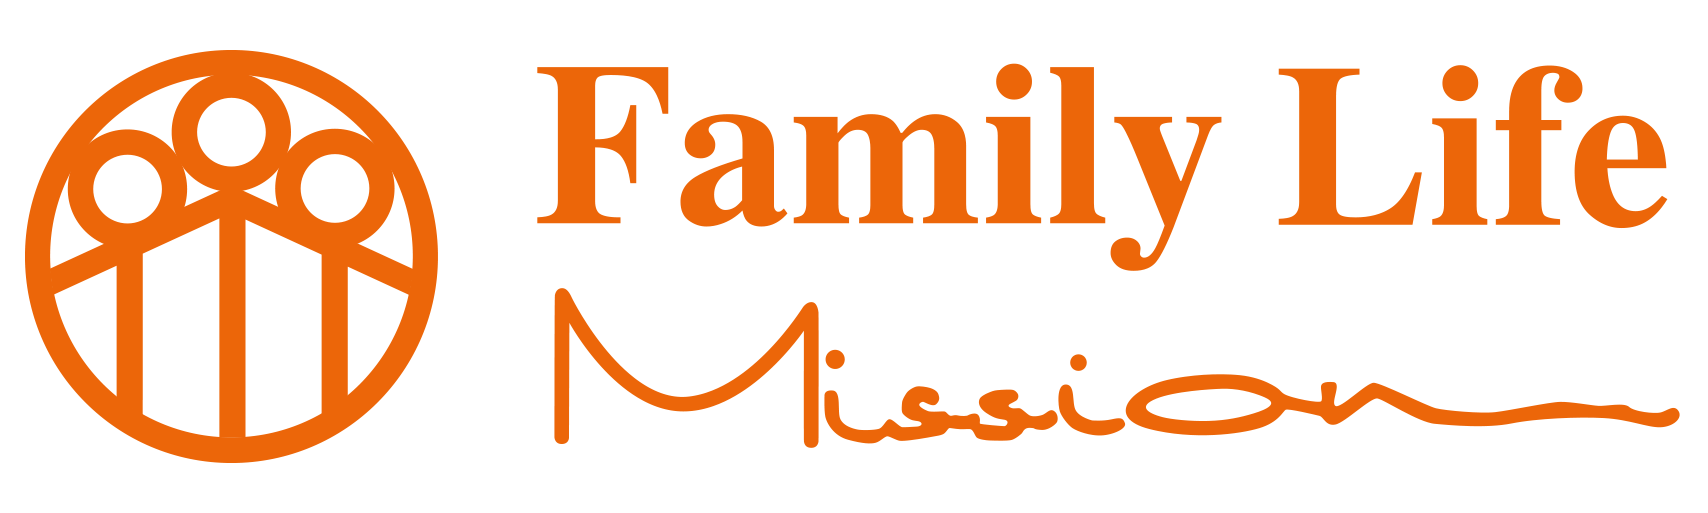 Family Life Mission Österreich